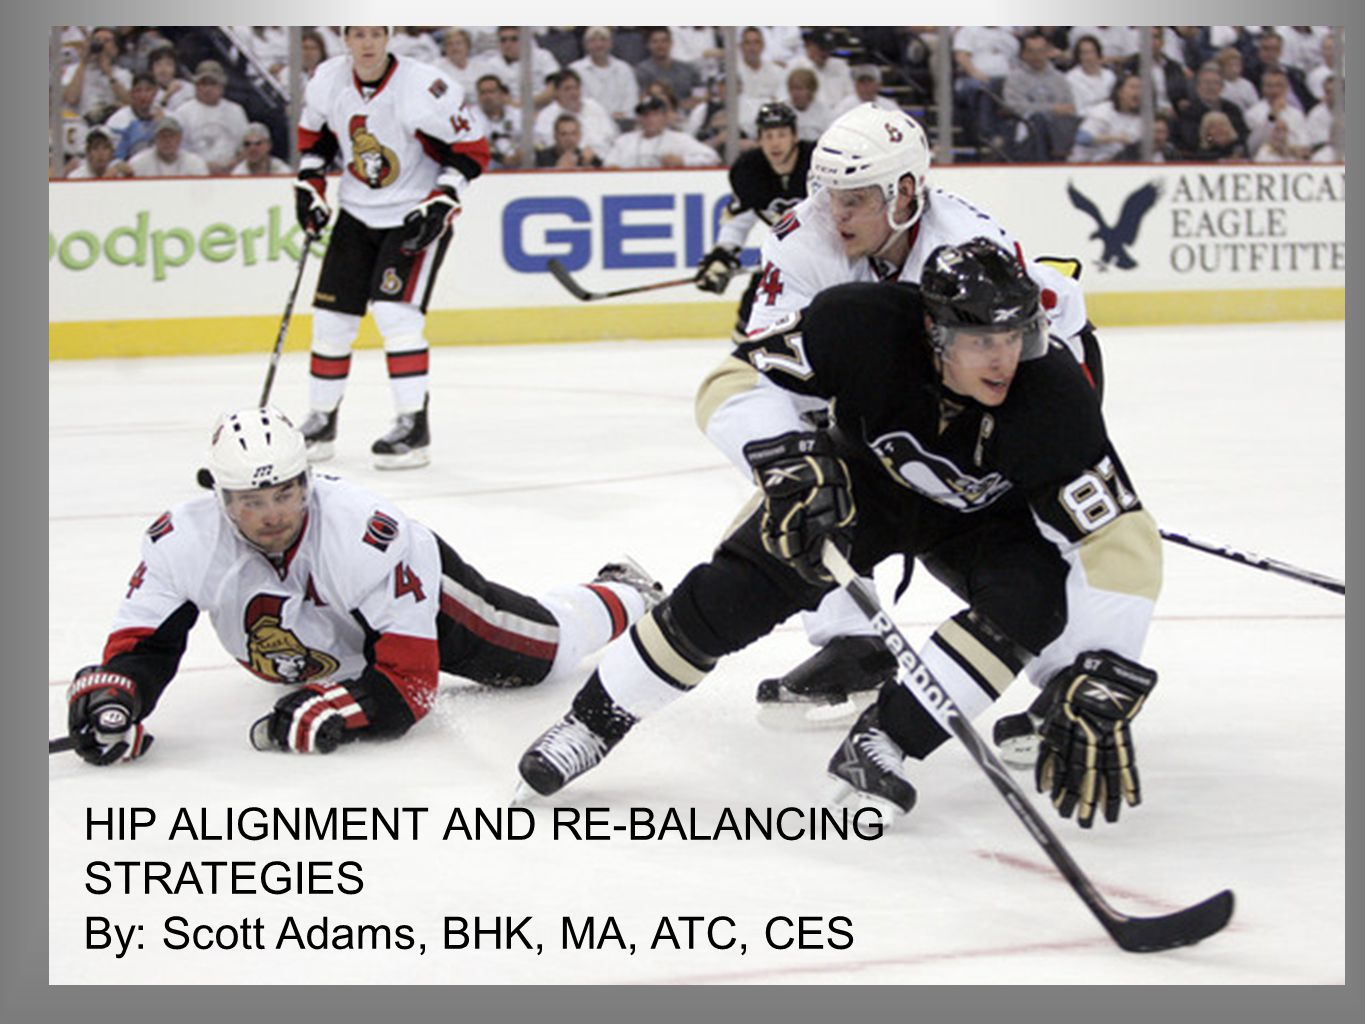 HIP ALIGNMENT AND REBALANCING STRATEGIES HIP ALIGNMENT AND RE-BALANCING STRATEGIES By: Scott Adams, BHK, MA, ATC, CES